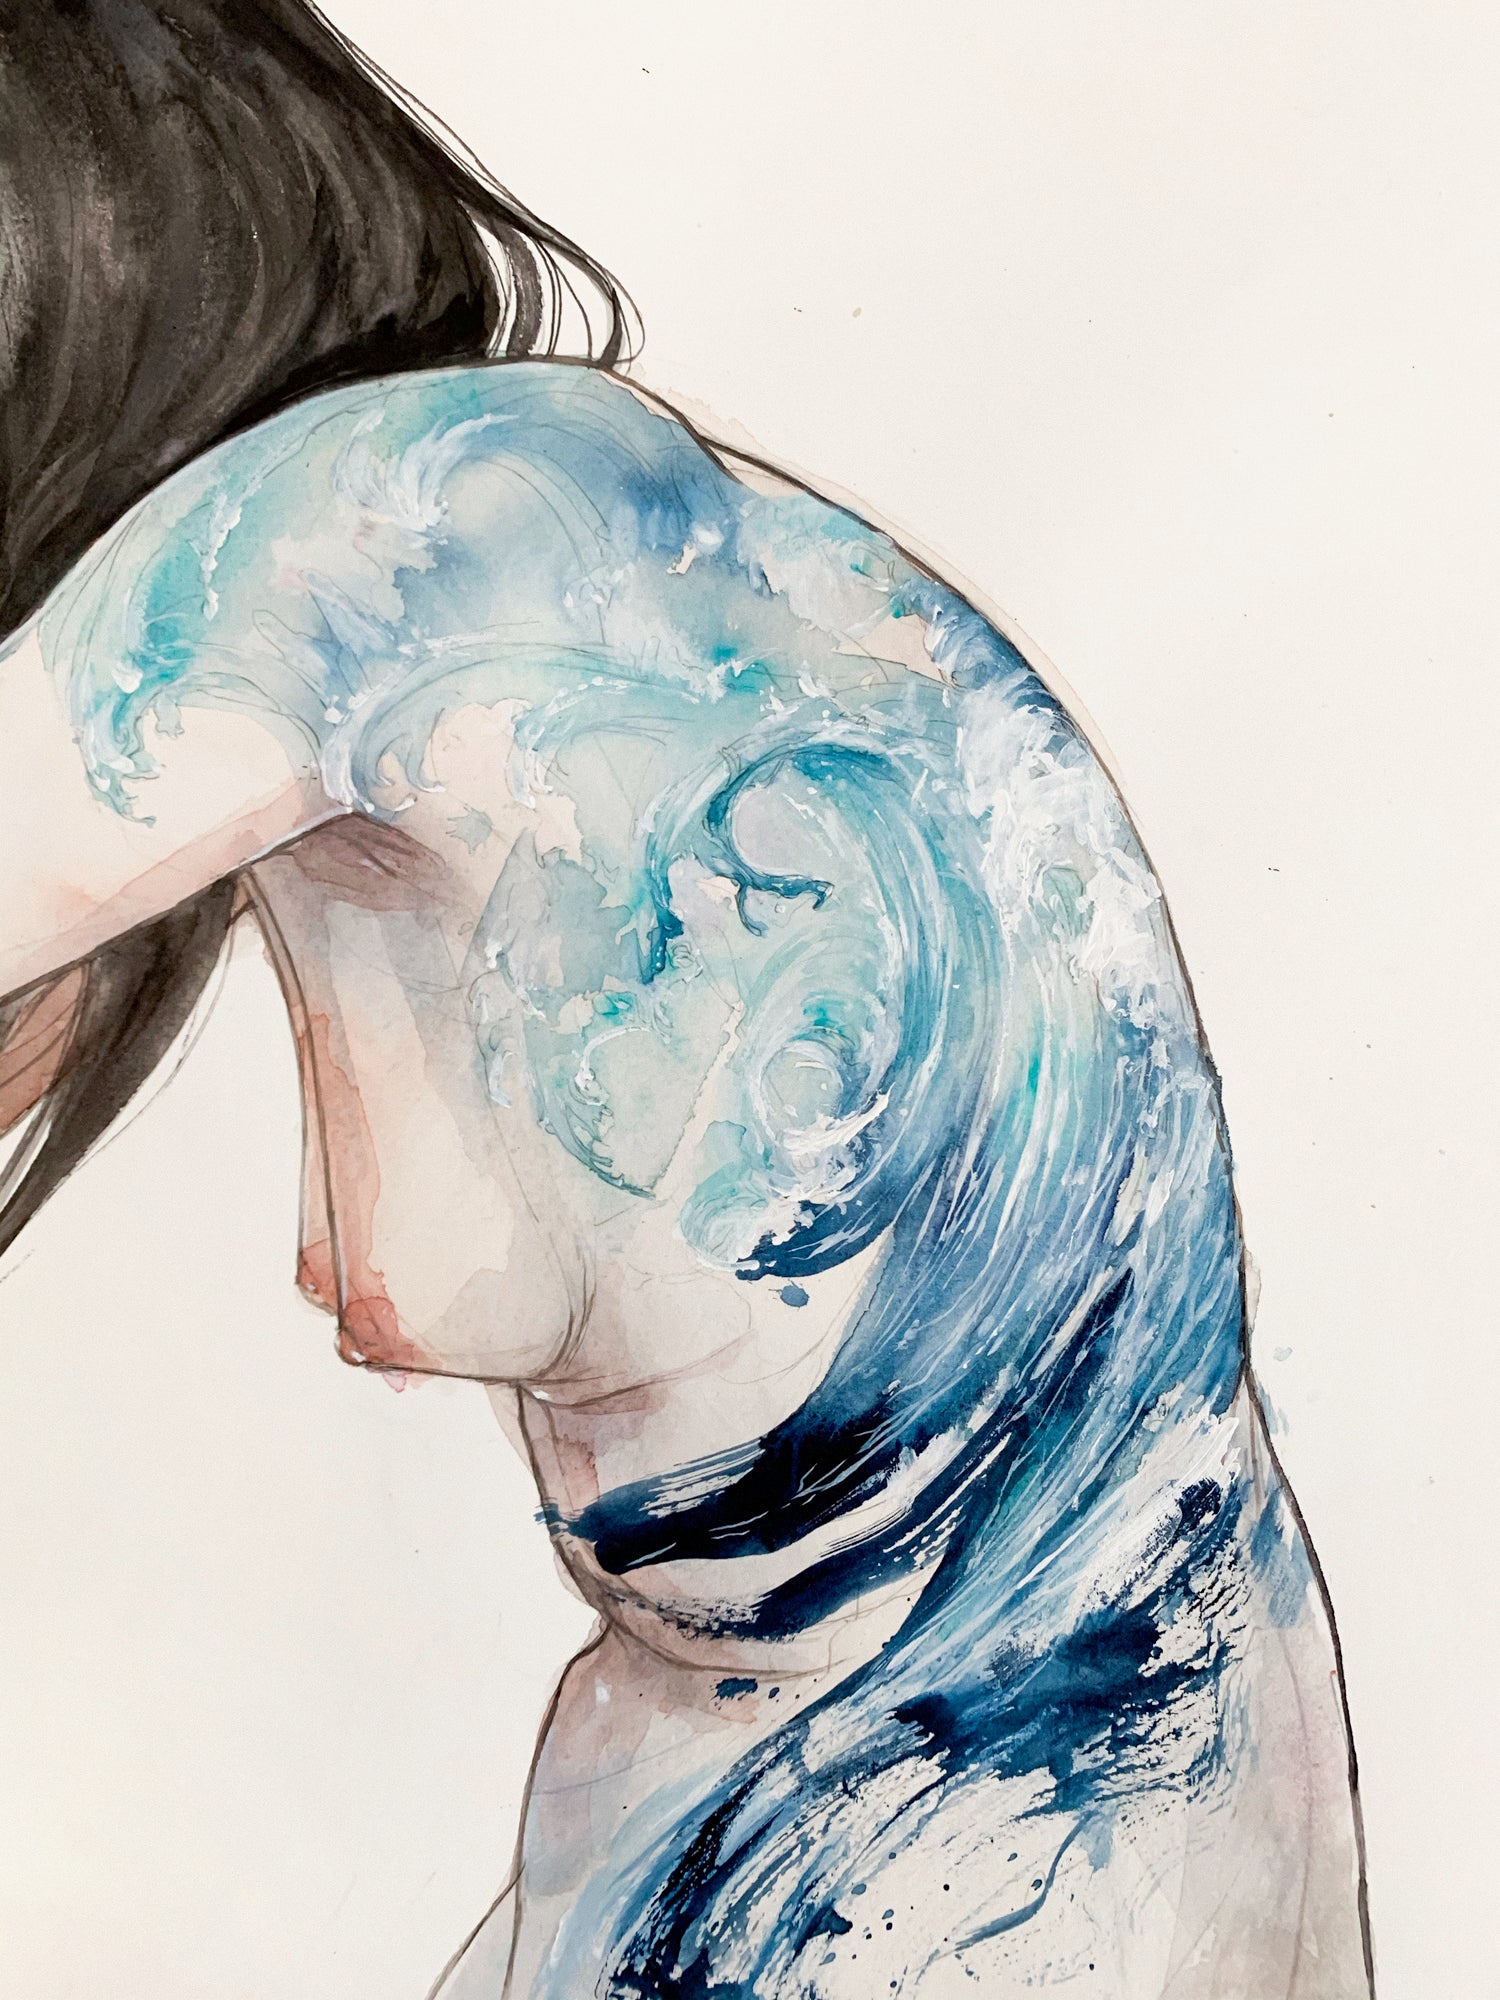 Agnes-Cecile mood: the wave